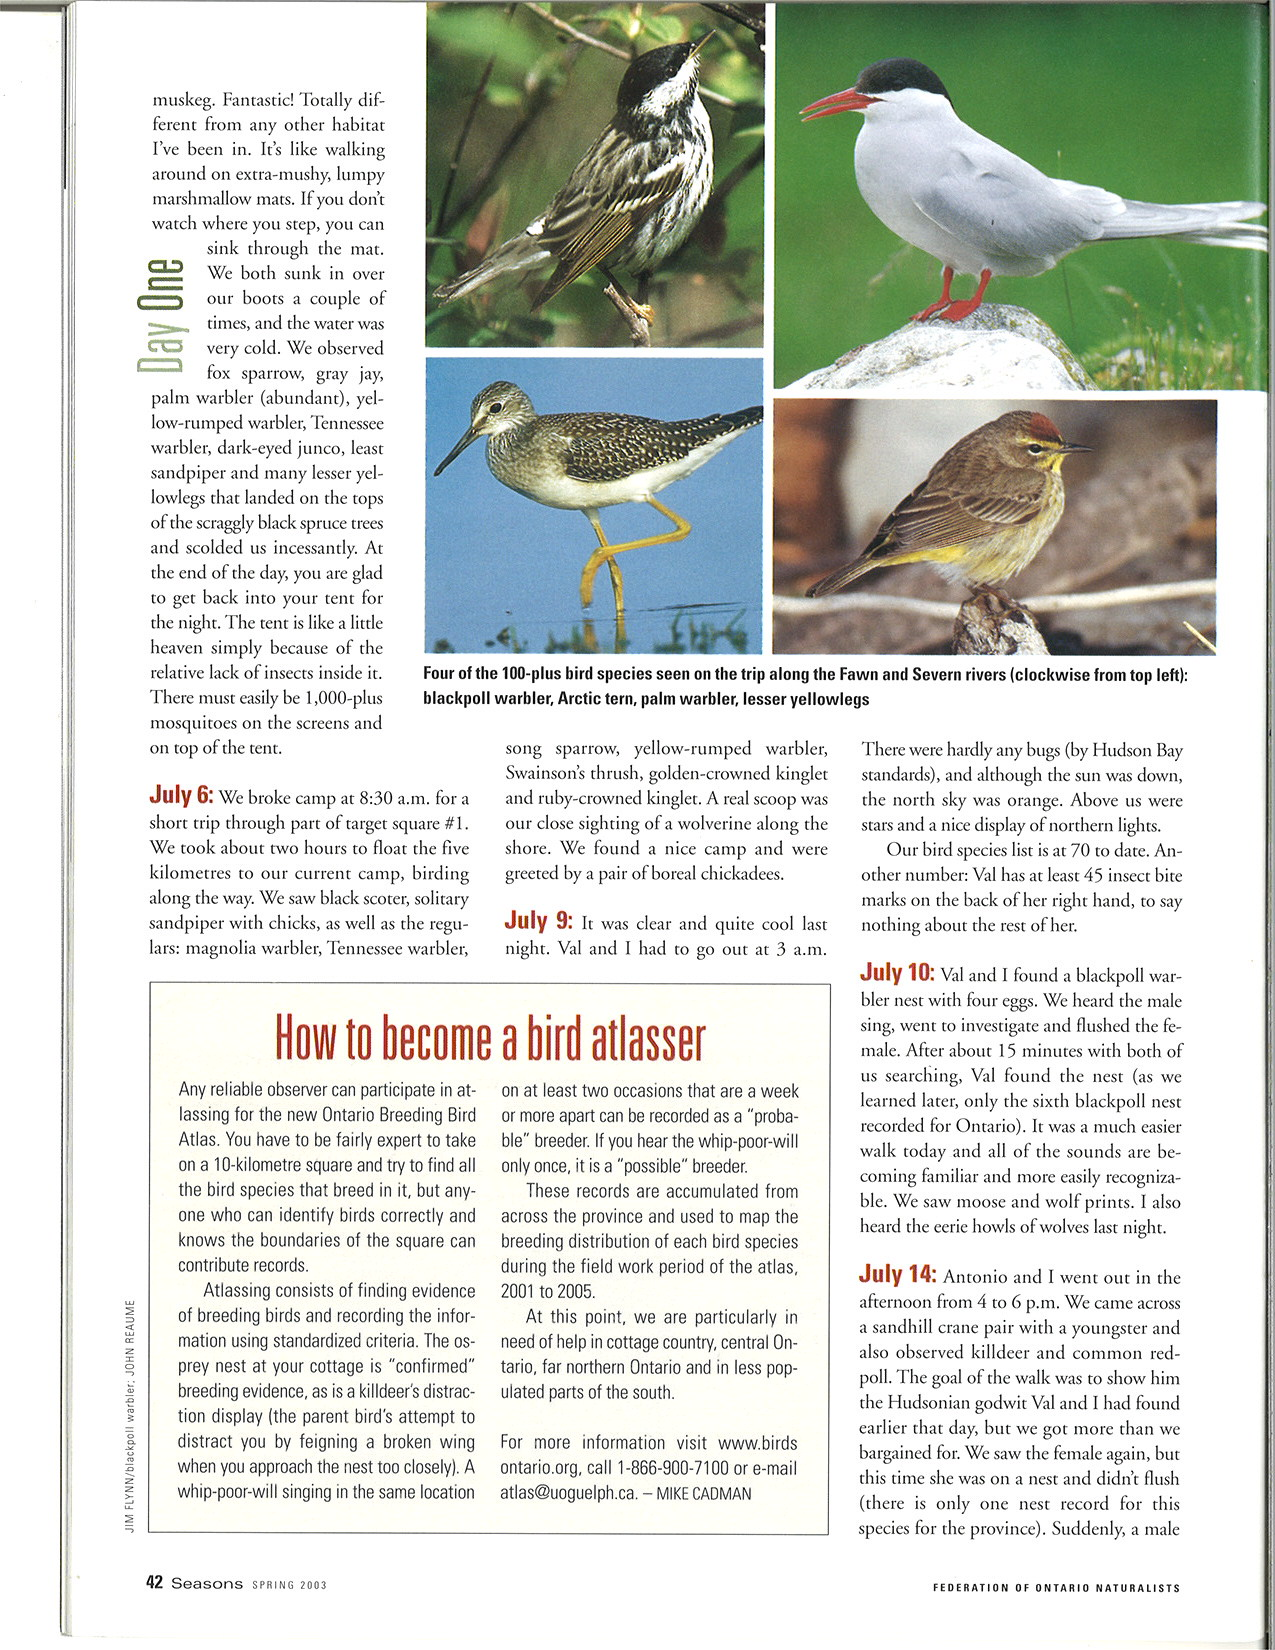 seasons_2003_v43_i1_d_Day_One_Birding_in_the_North_42